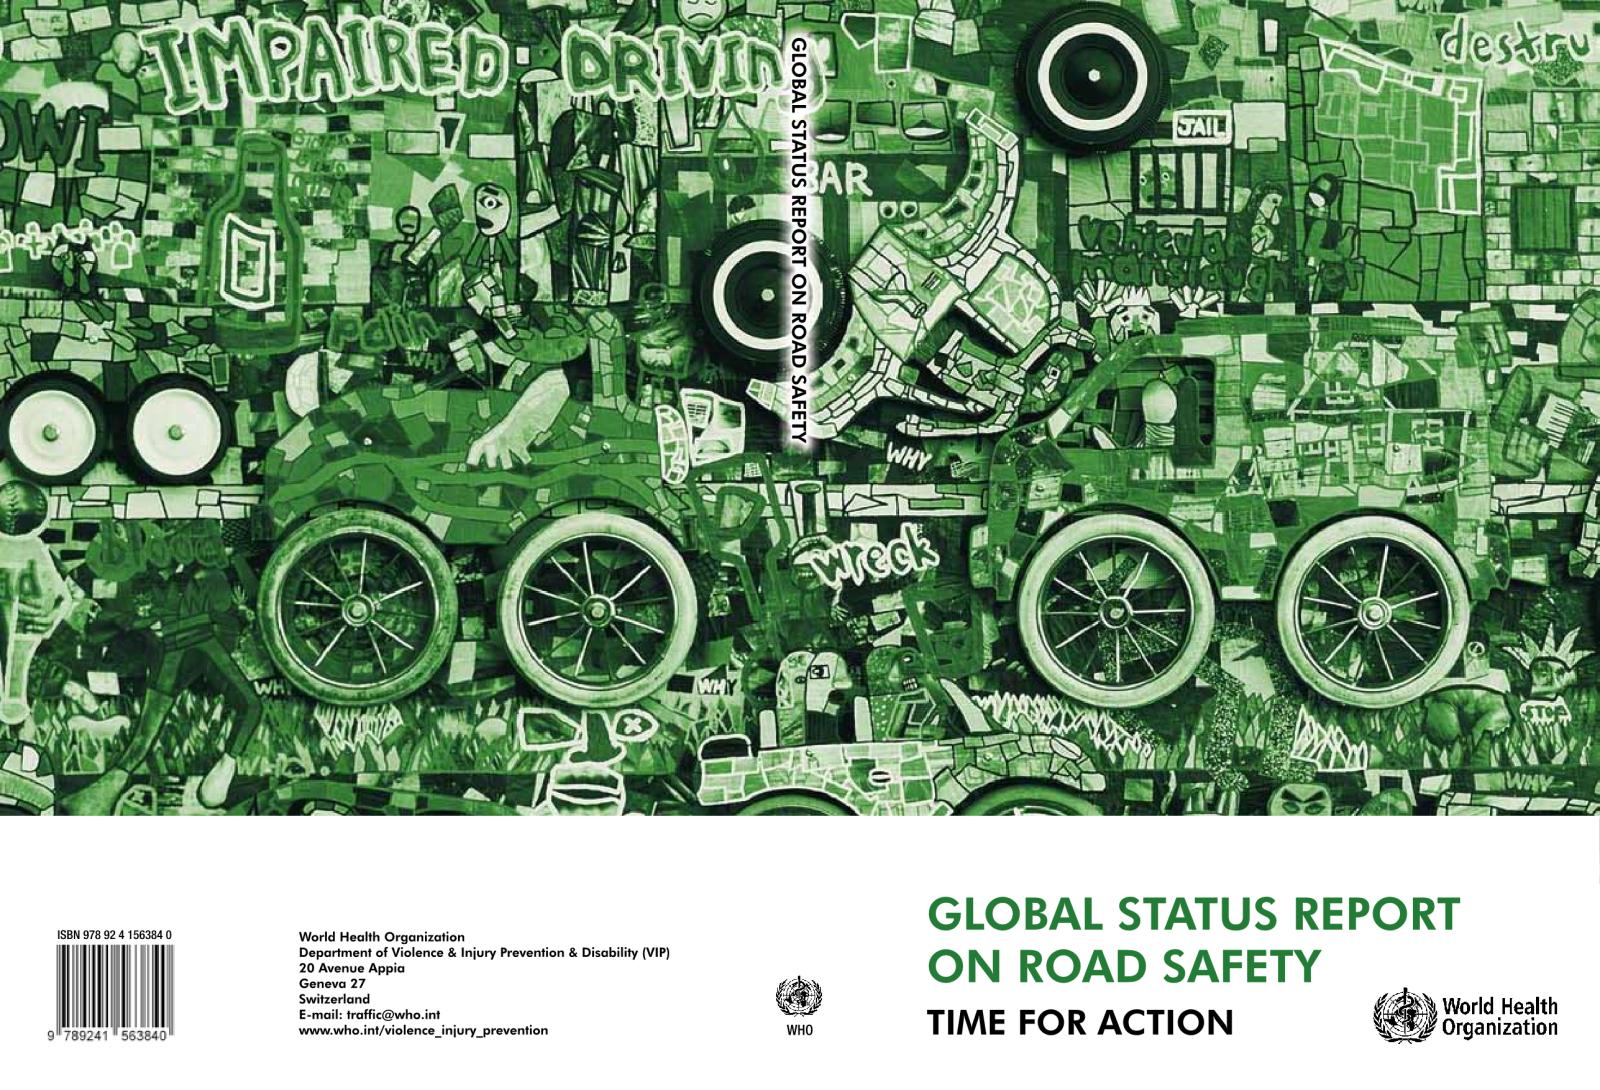 Global status report on road safety 2009